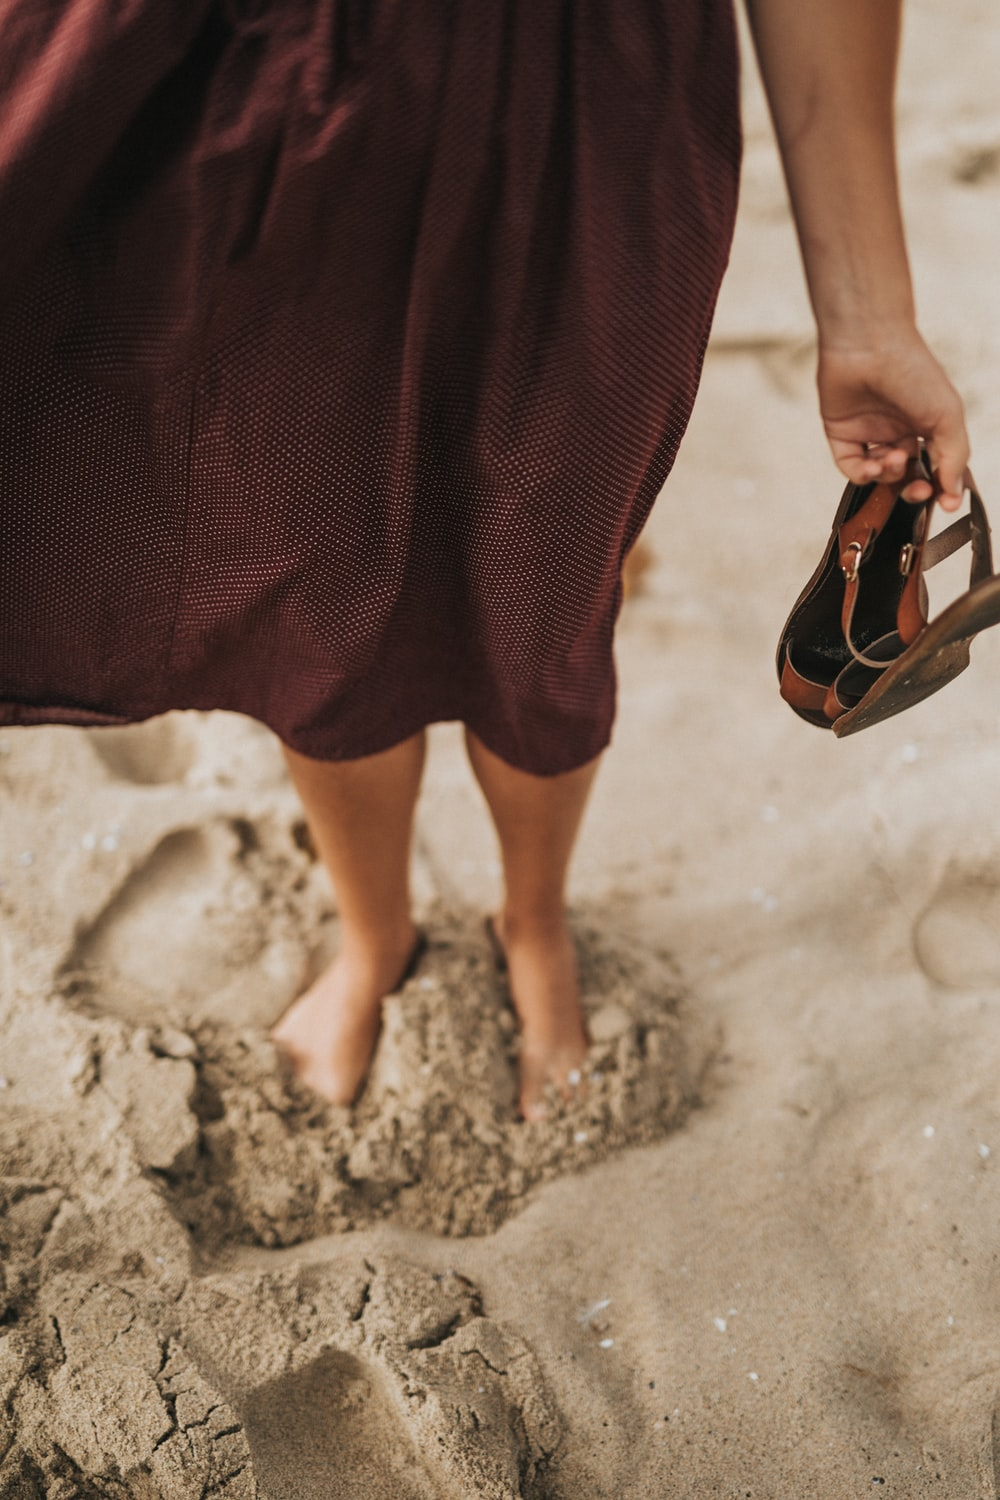 woman stepping on brown sand